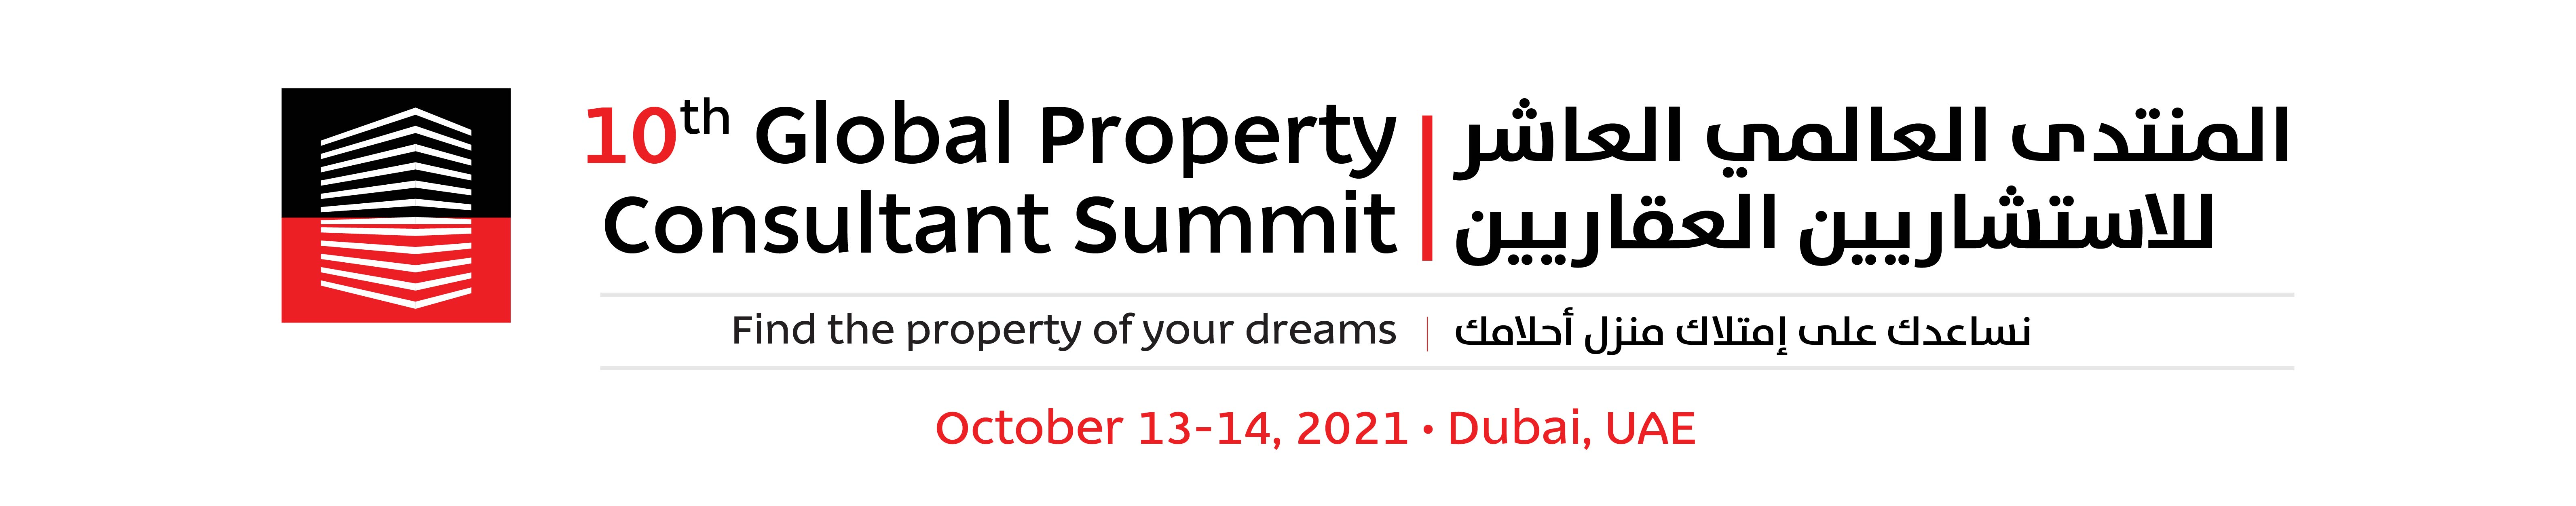 10th Global Property Consultant Summit